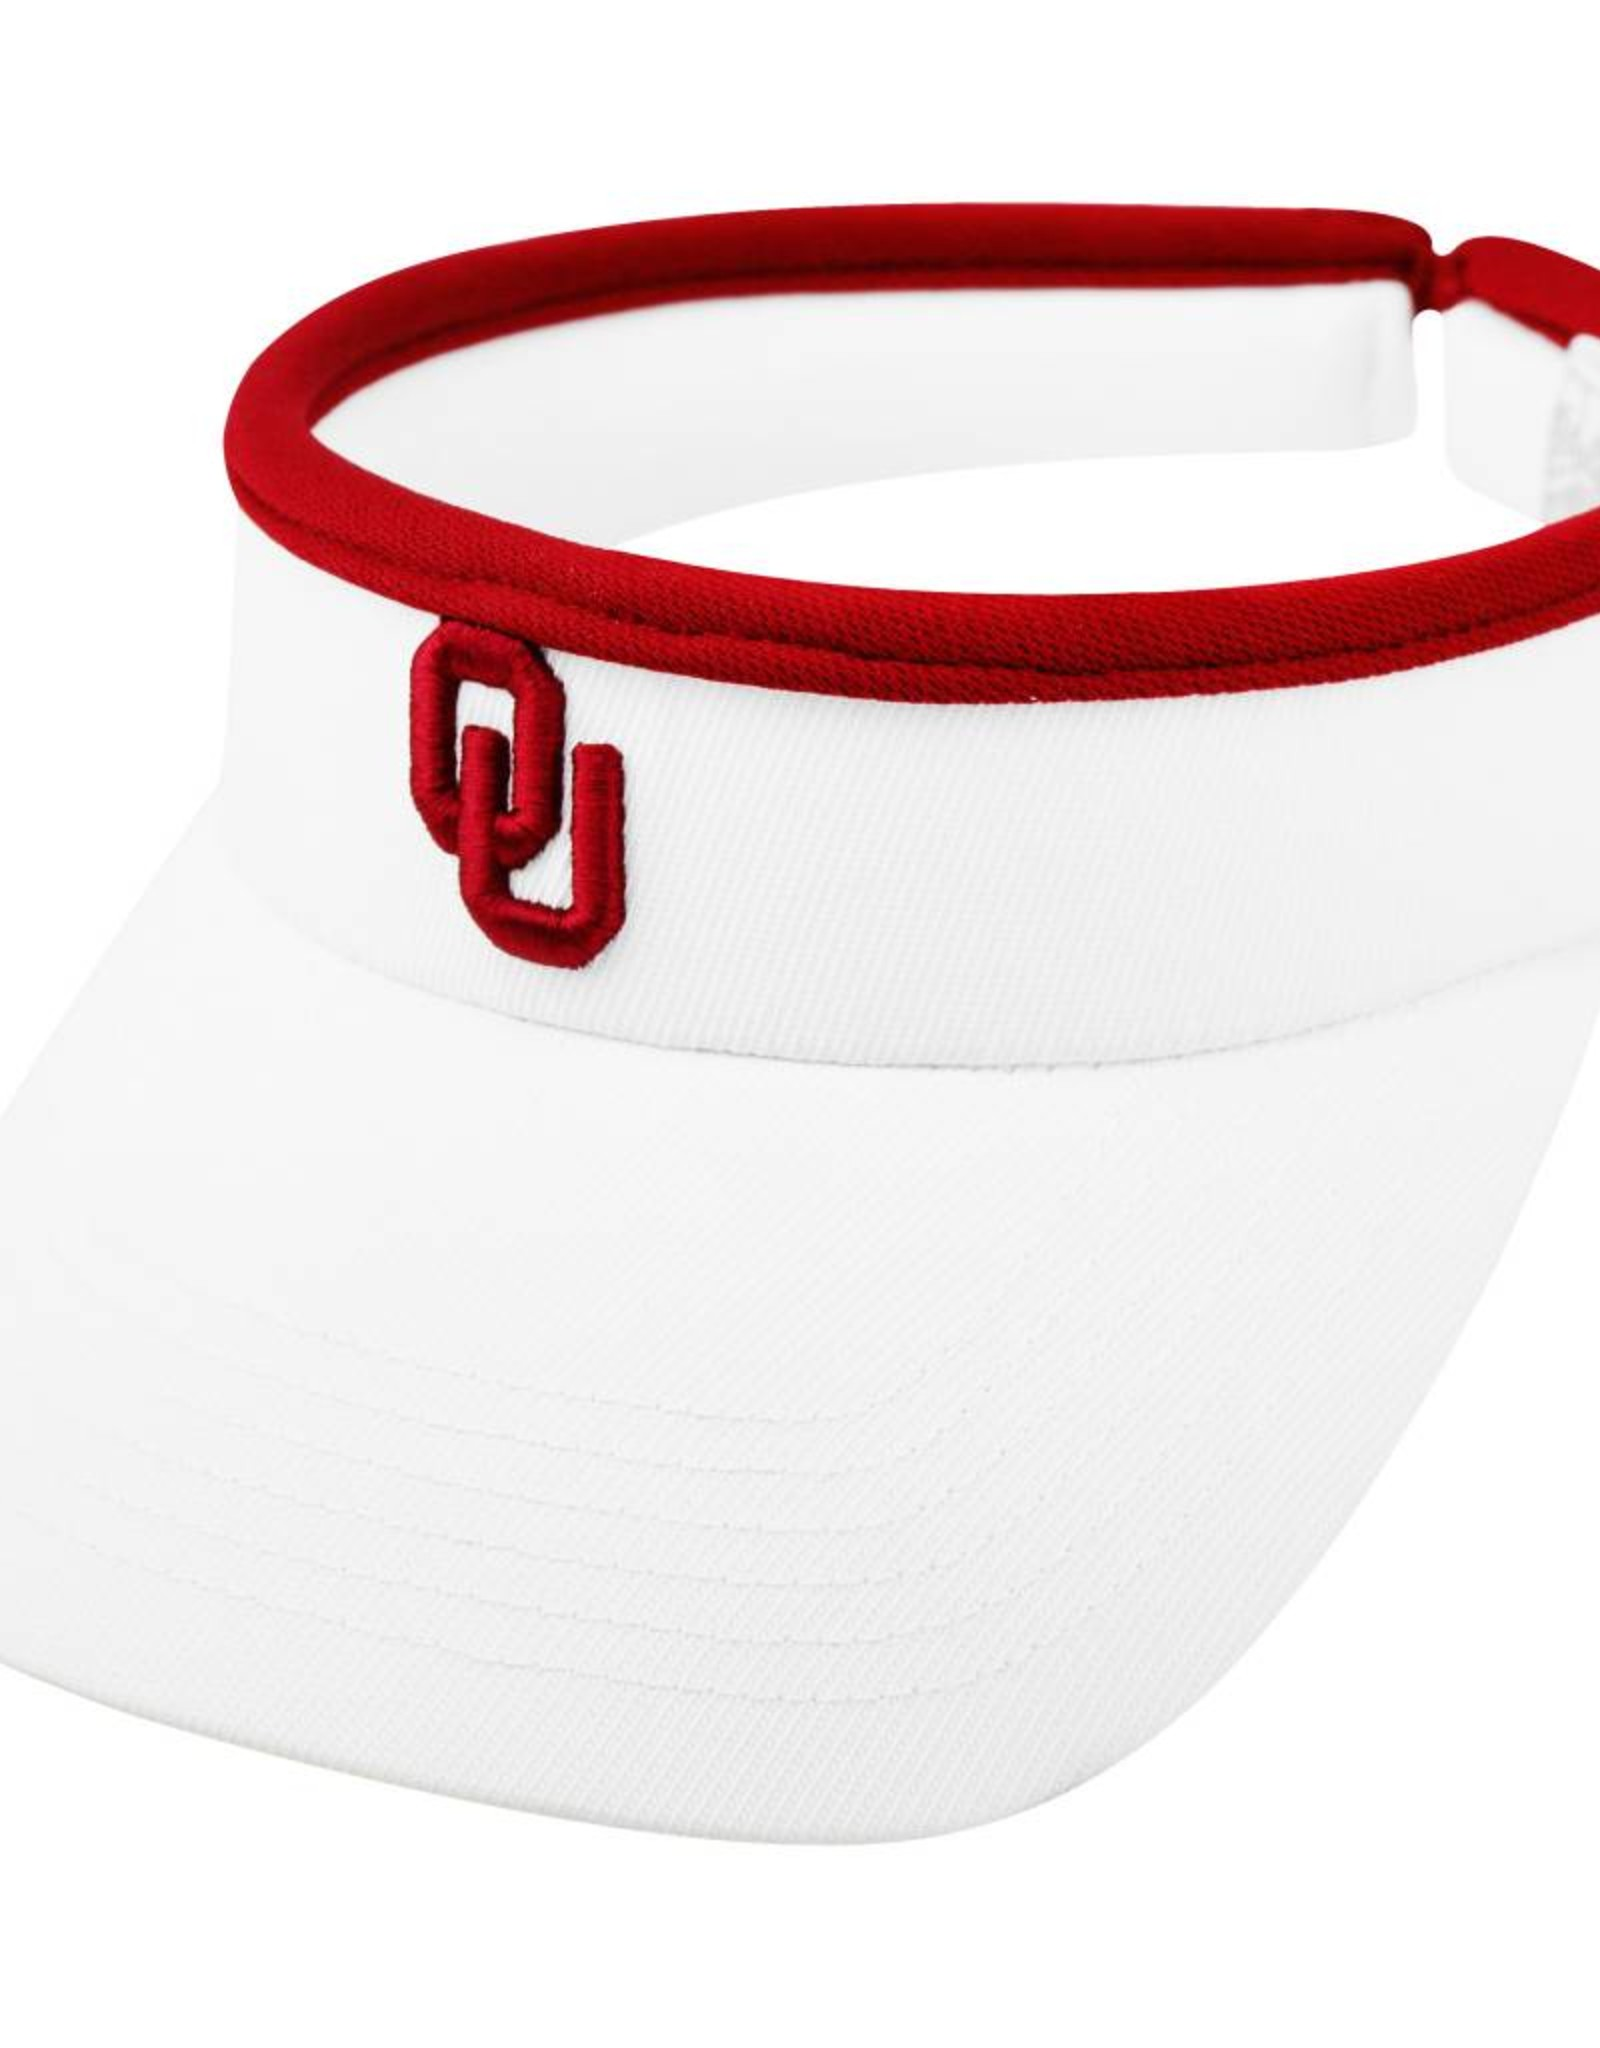 Top of the World TOW Women's Trubeaut Clip Visor